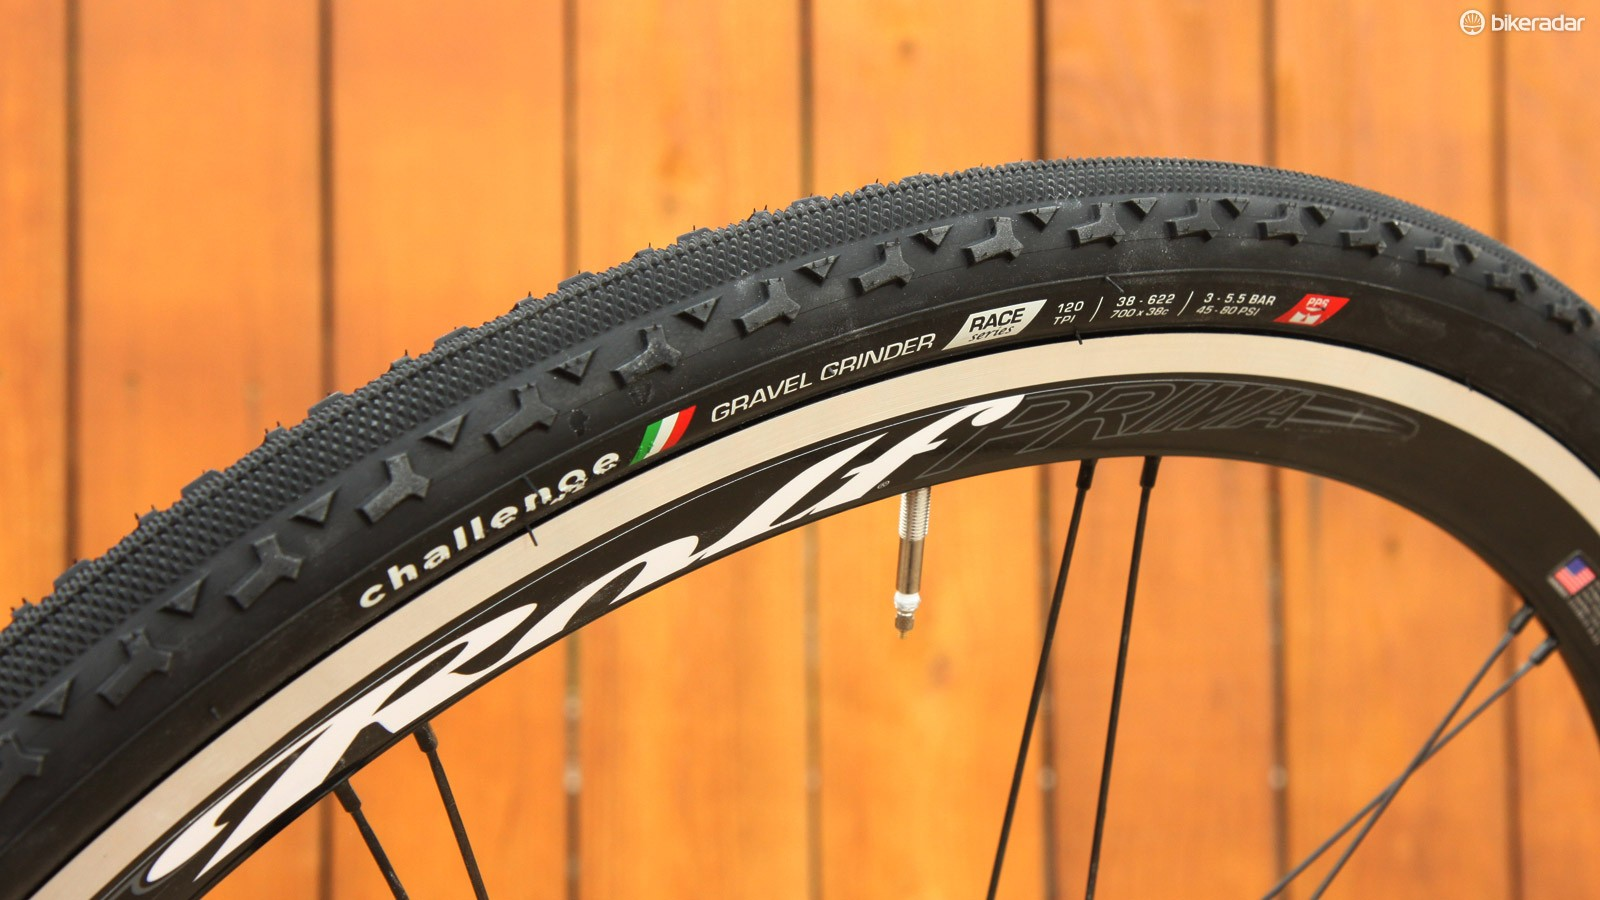 Challenge gets into the gravel game with the new Gravel Grinder tyre, using the same tread as the cyclocross-specific Chicane but with a tougher-wearing rubber compound and more durable vulcanised construction